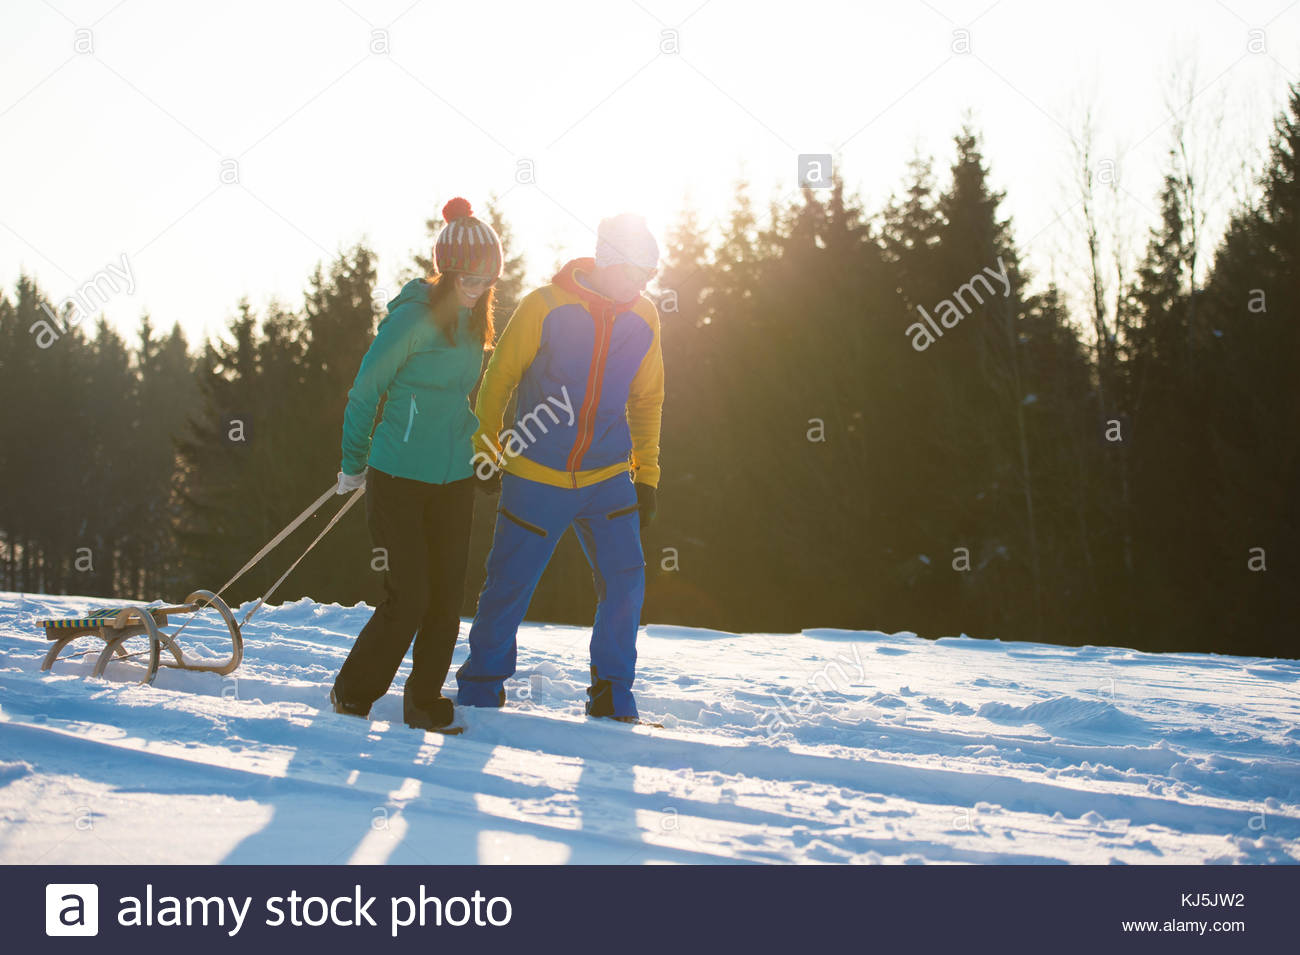 Sledding in winter - Stock Image